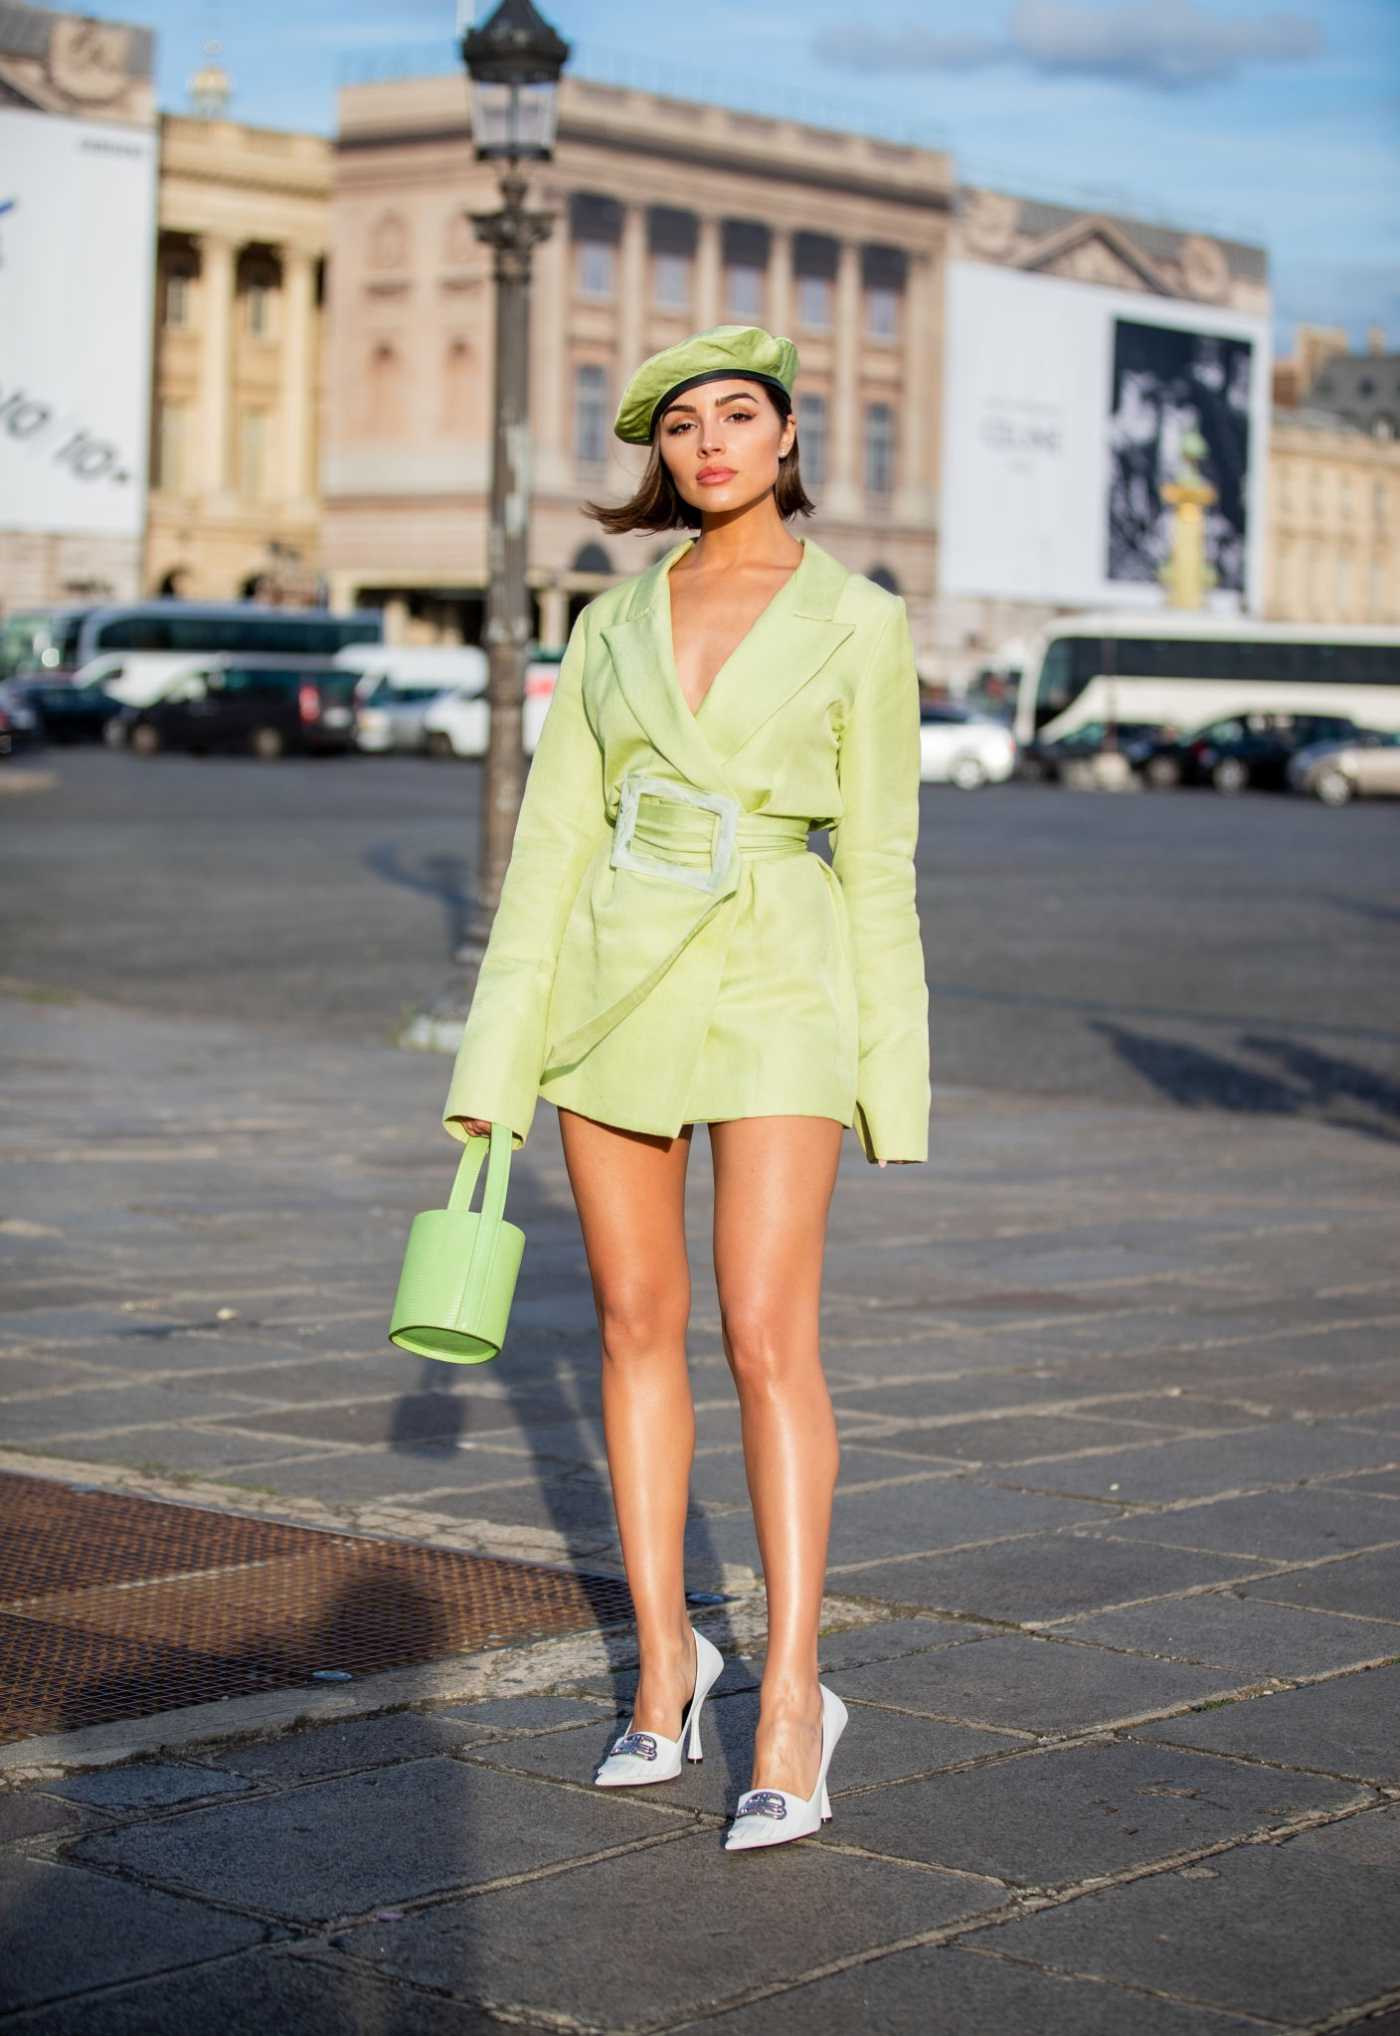 Olivia Culpo in a Neon Green Blazer Was Seen Out in Paris 09/28/2019